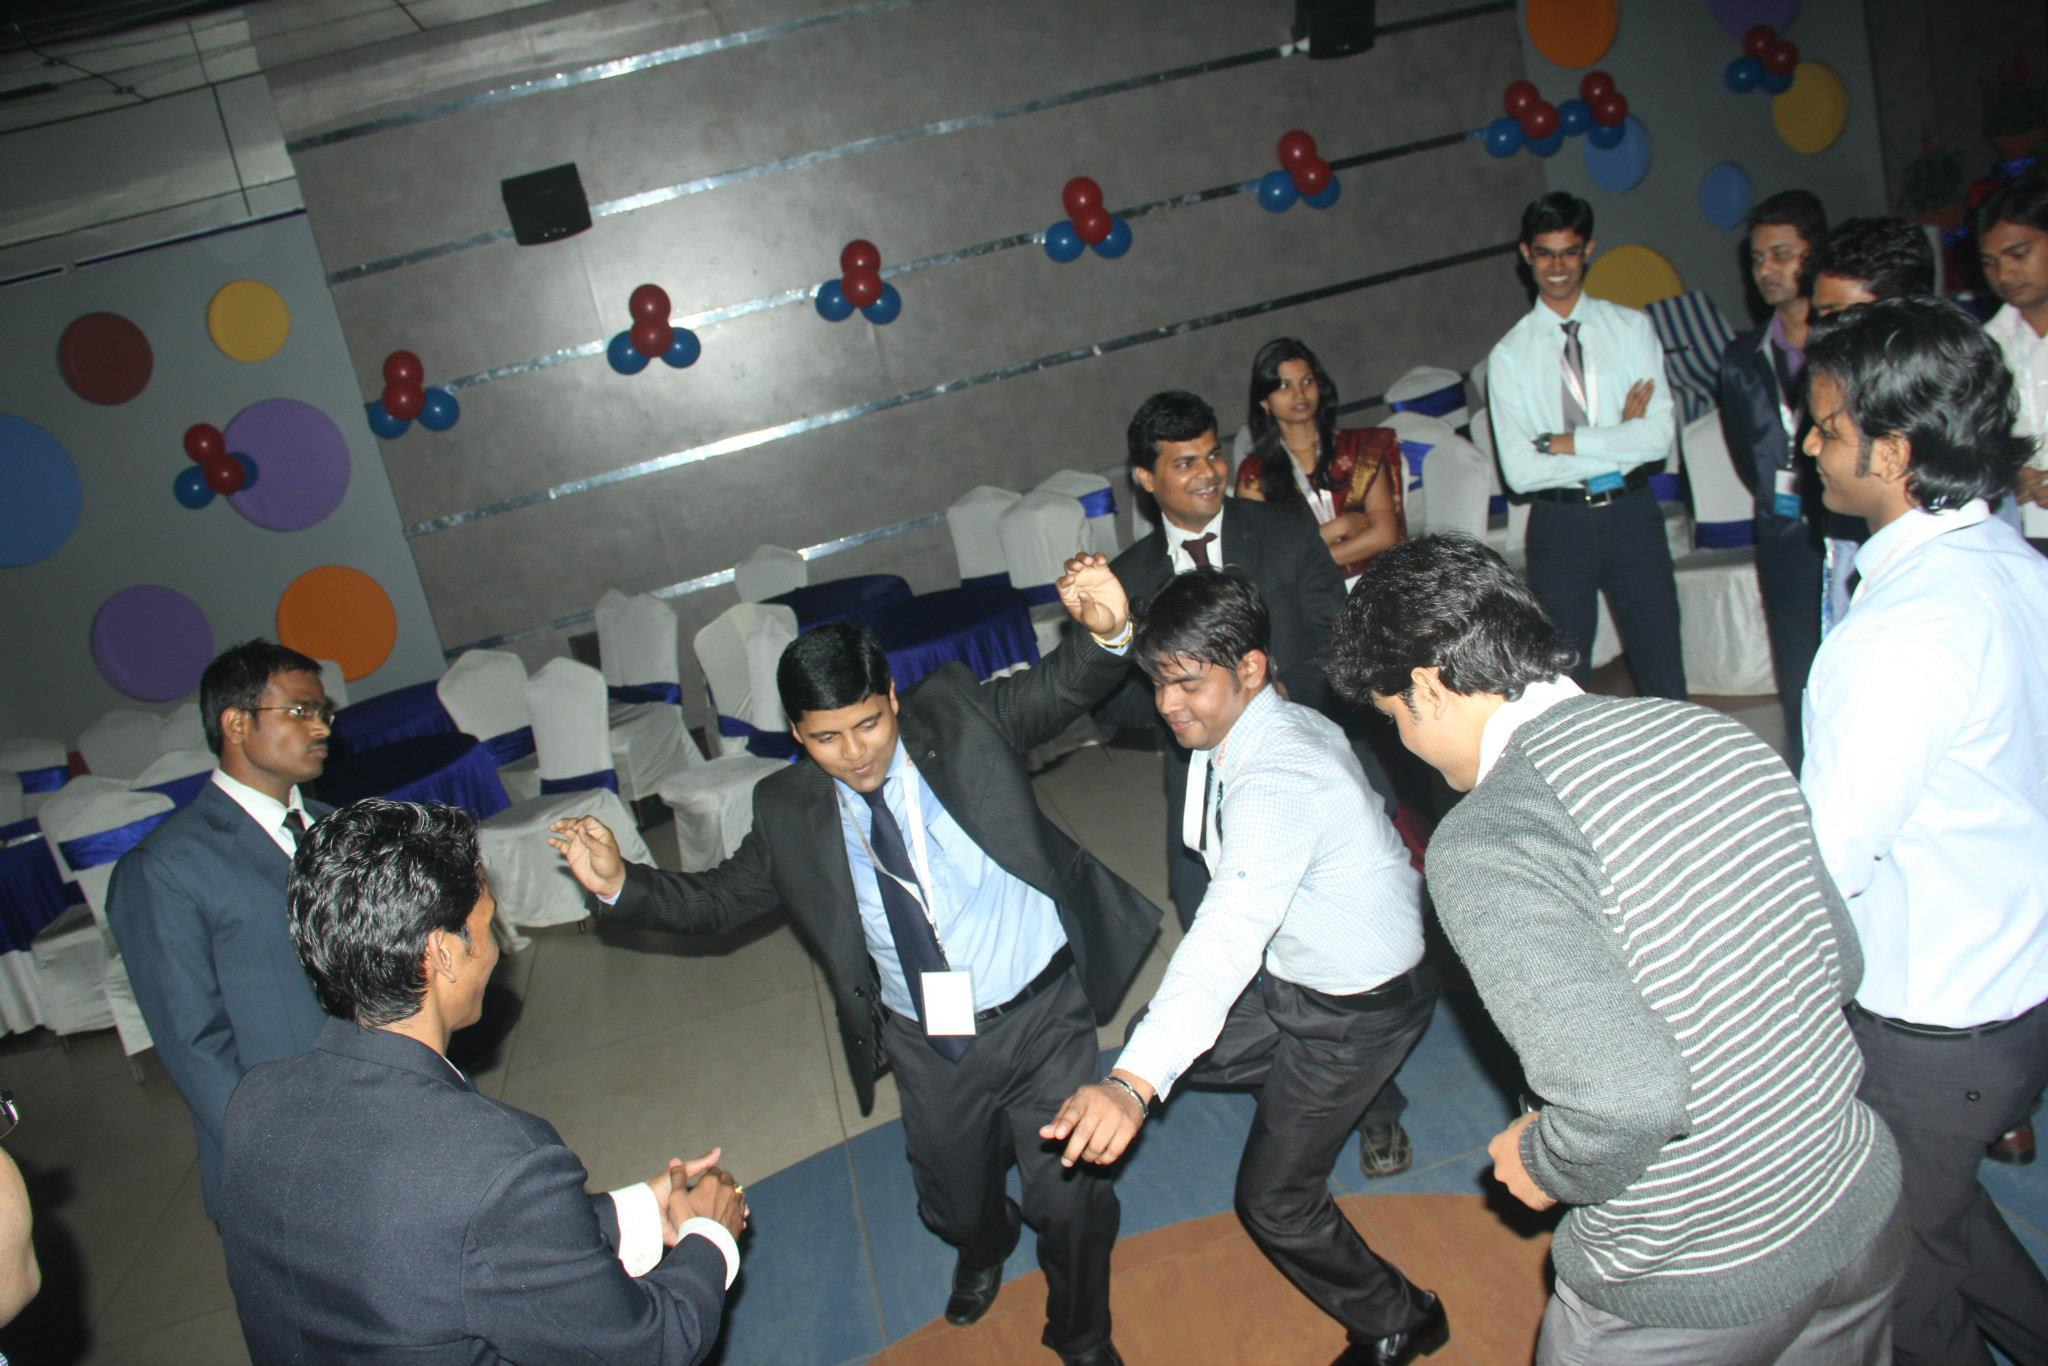 Electrifying Performance by the Employees.